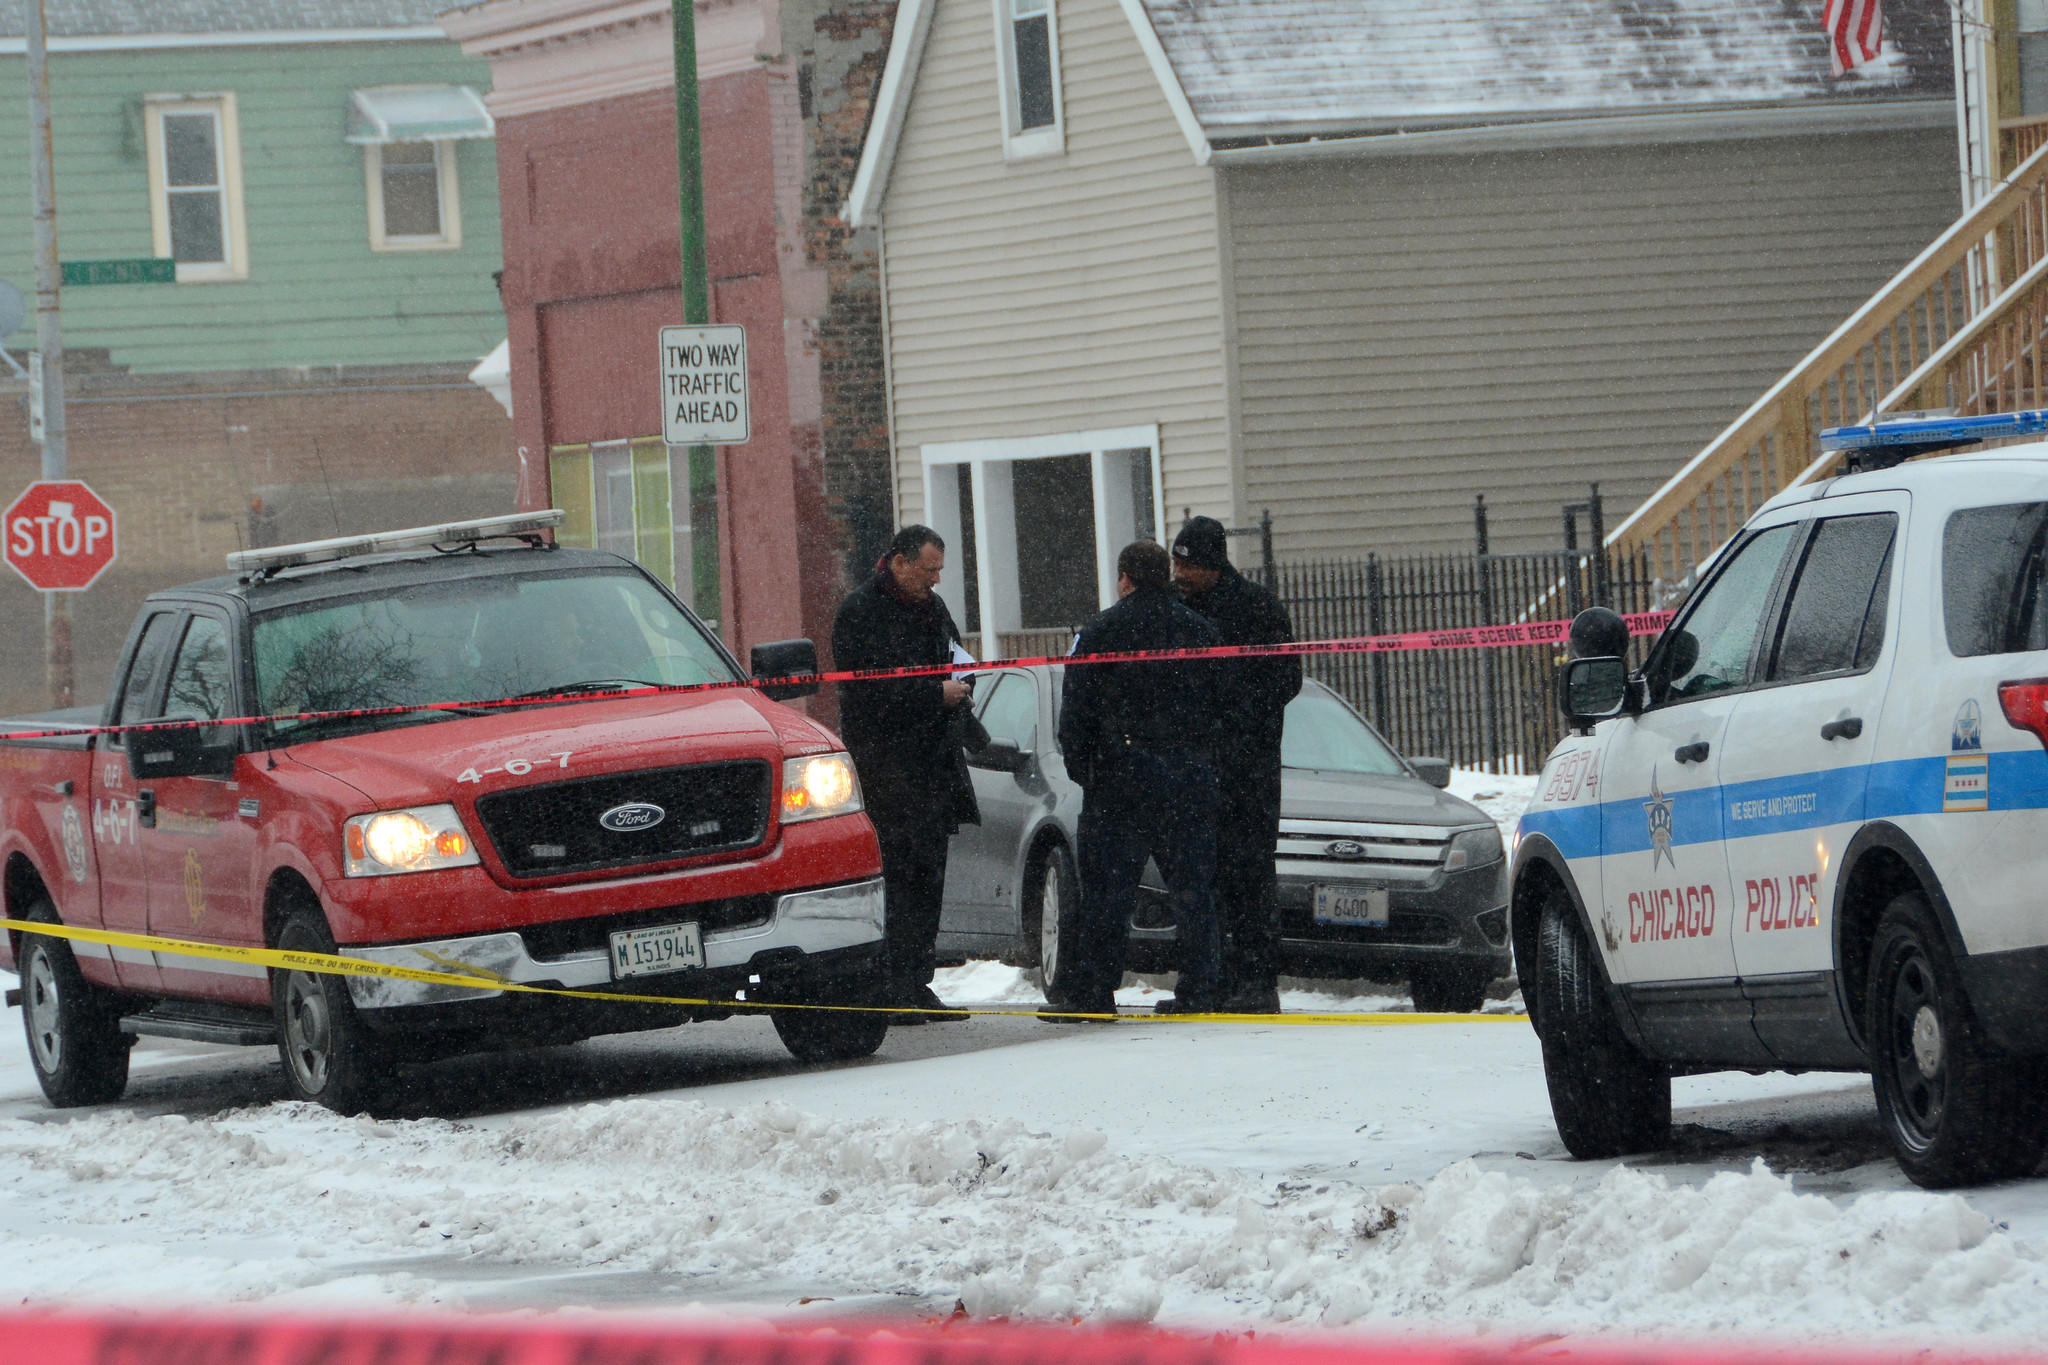 Chicago Police and Chicago Fire departments investigate a fire in the 8300 block of South Baker in Chicago where a man was found dead.